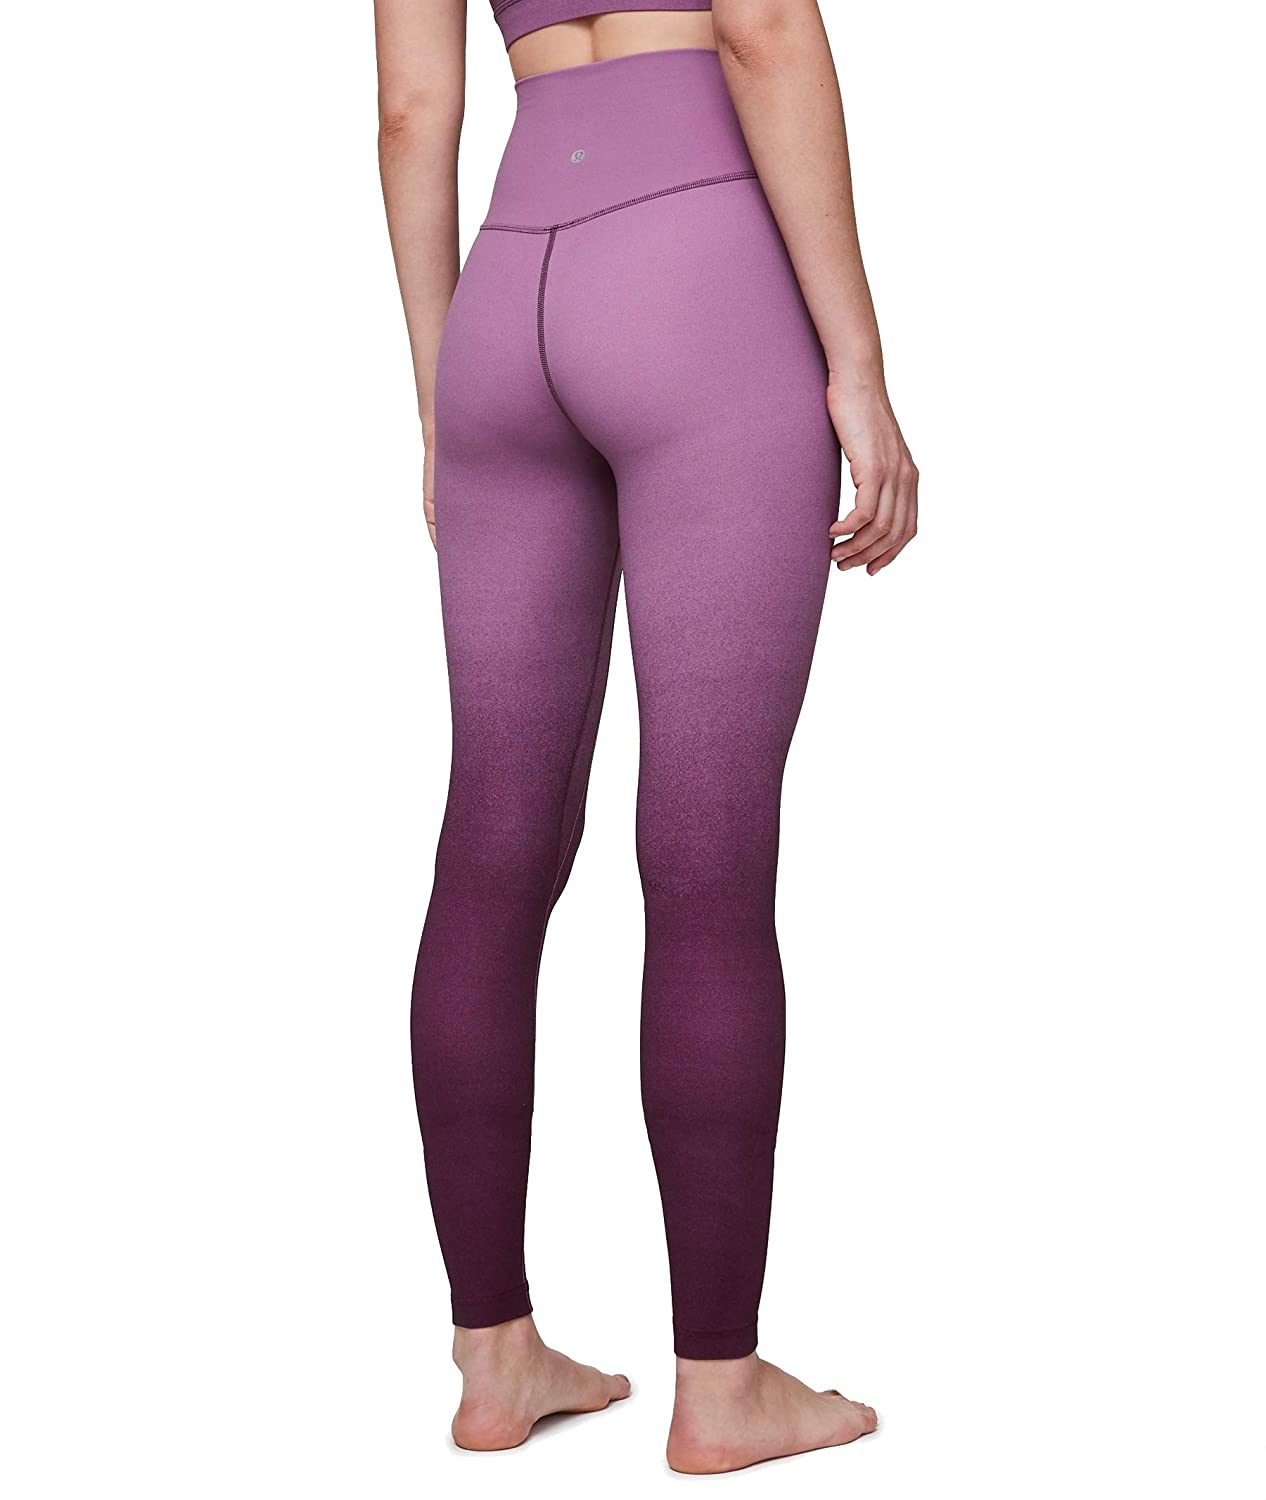 Lululemon Leggings Align Pant: Best for Yoga